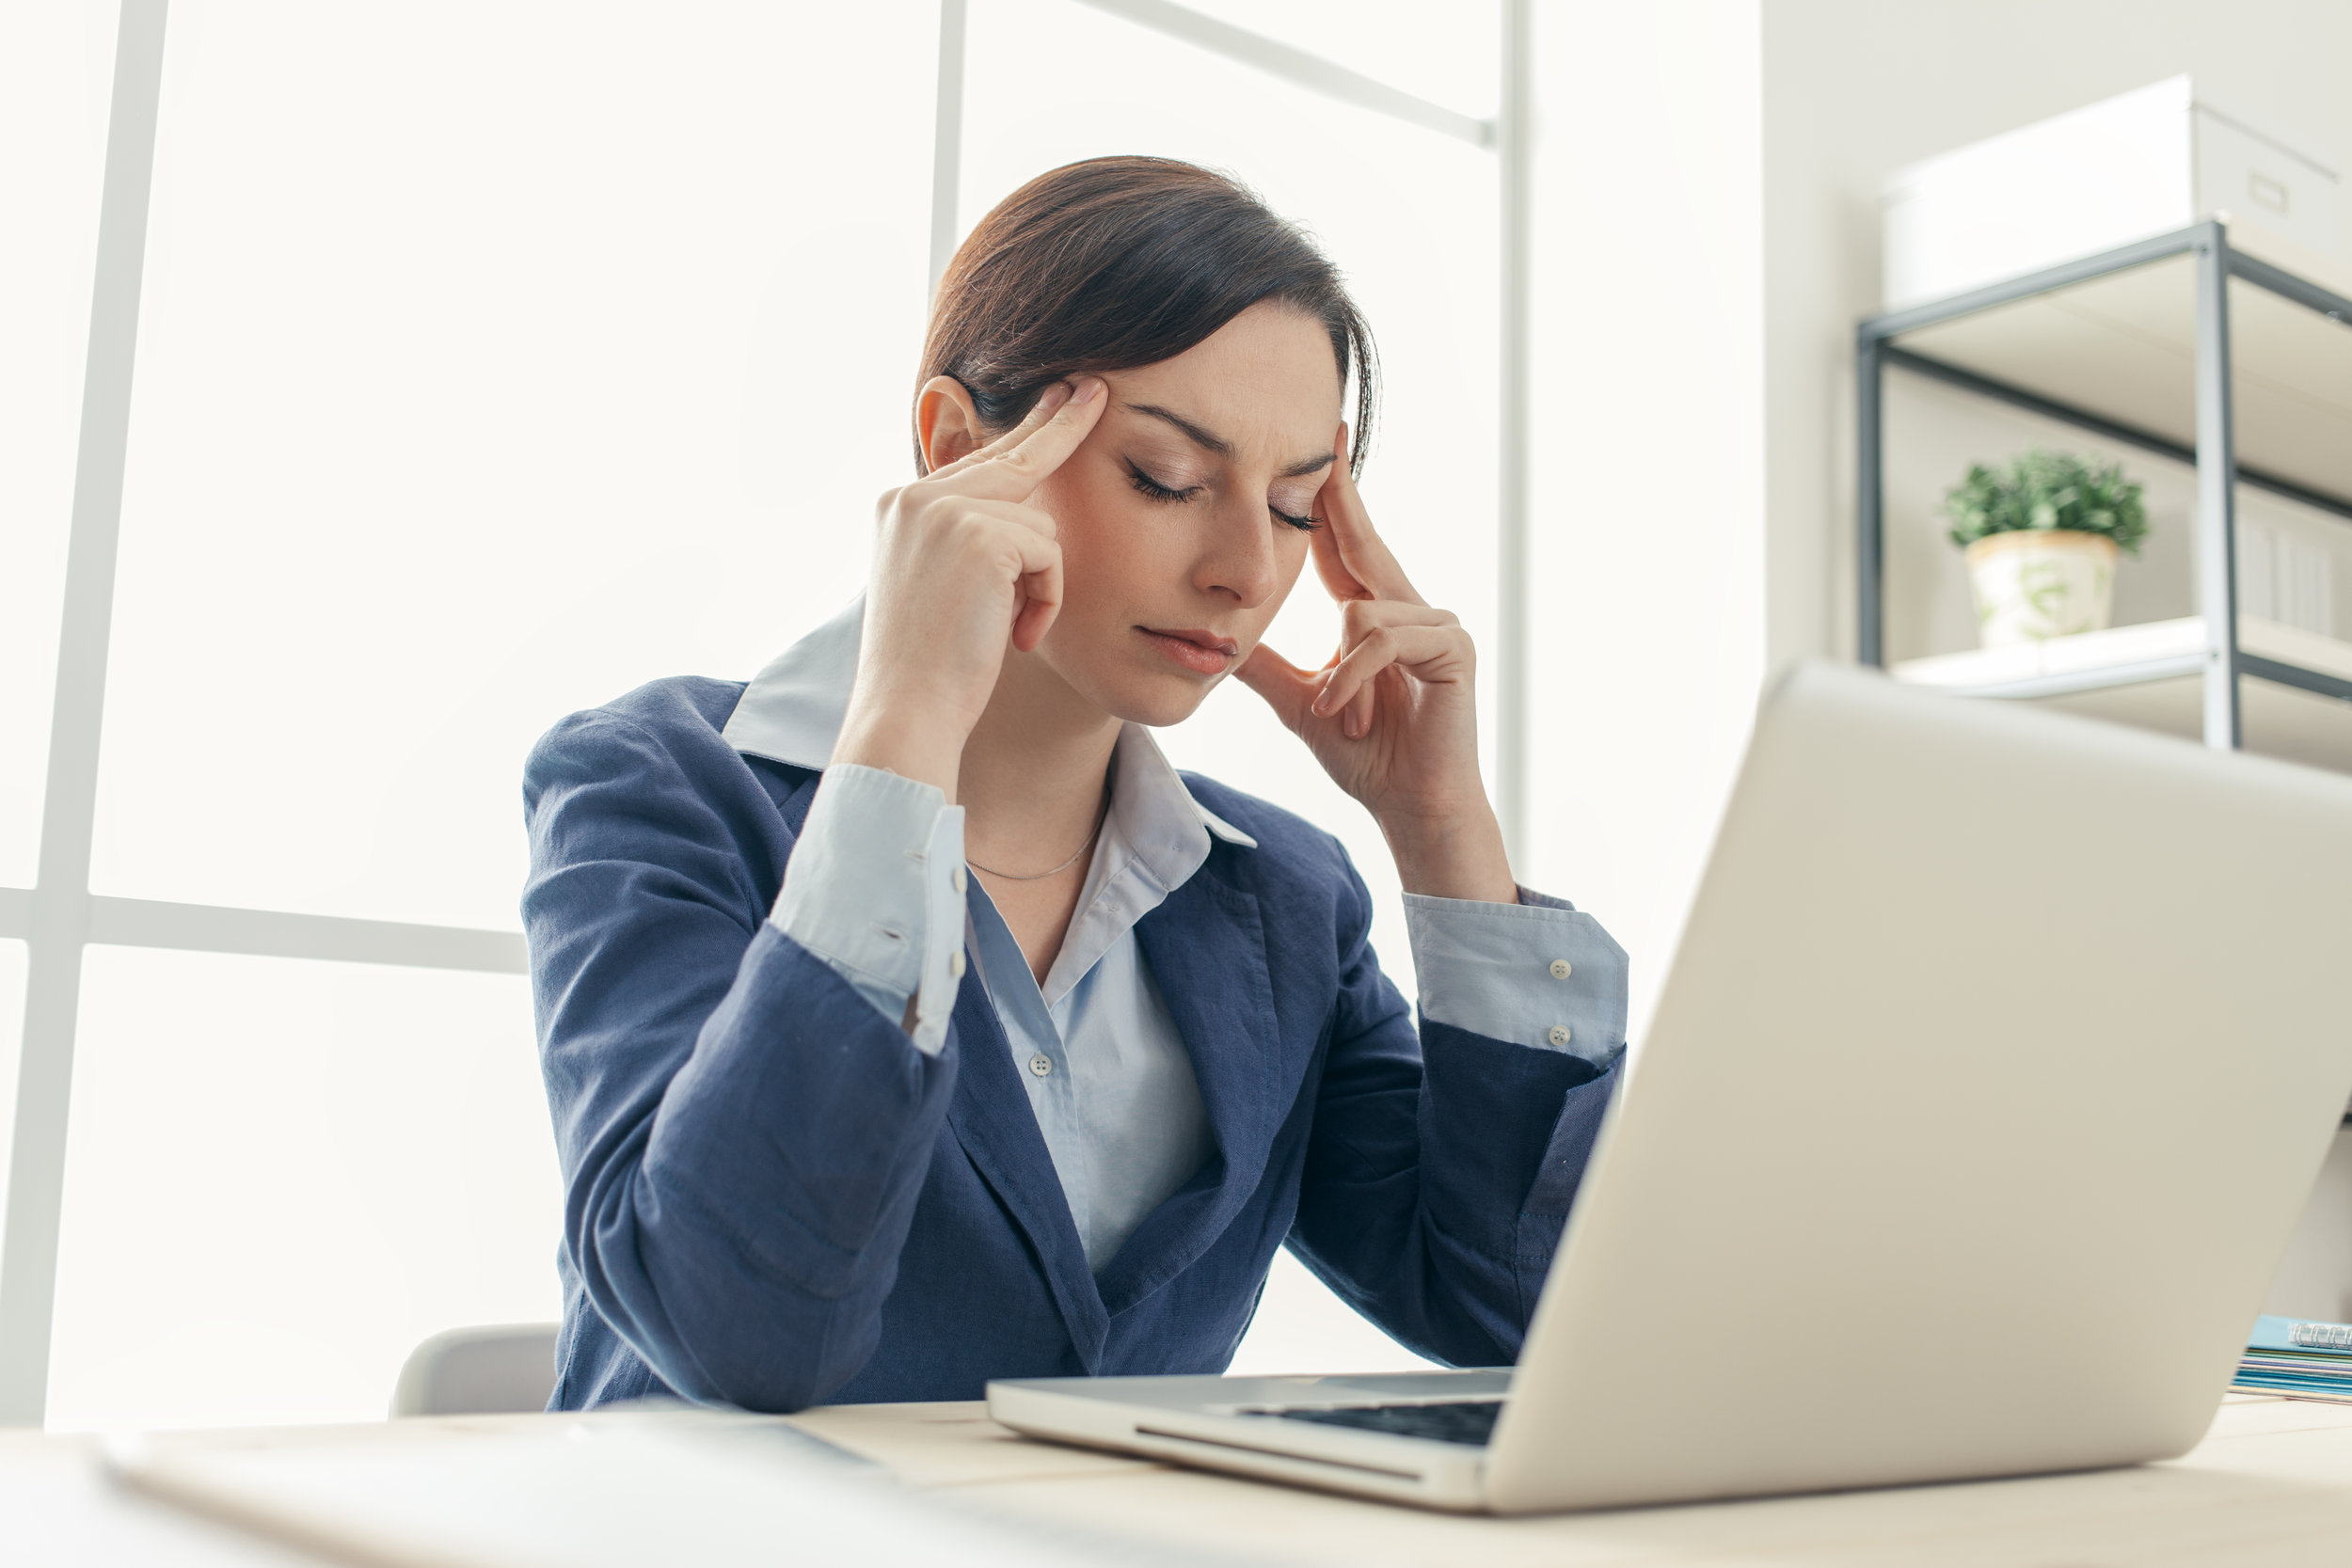 exhausted-businesswoman-at-work-PZWPTBL.jpg